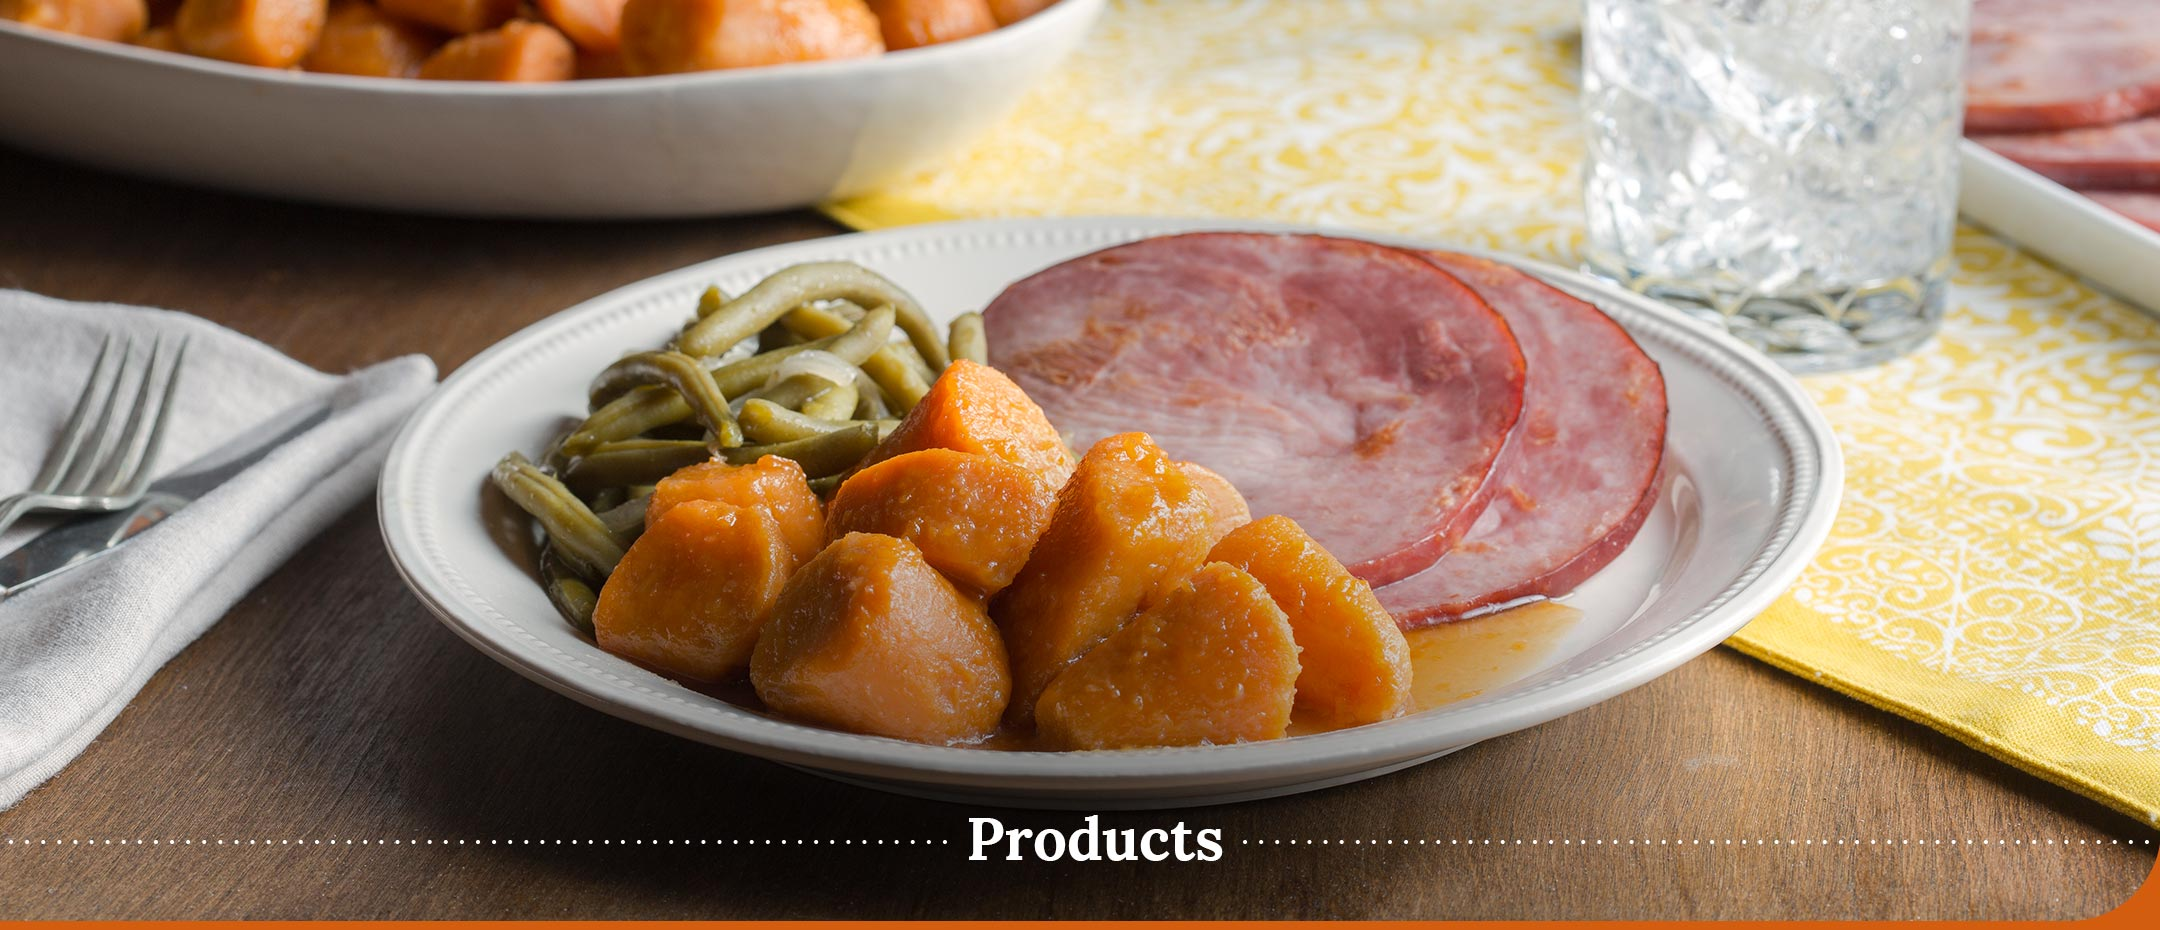 Products Header Image